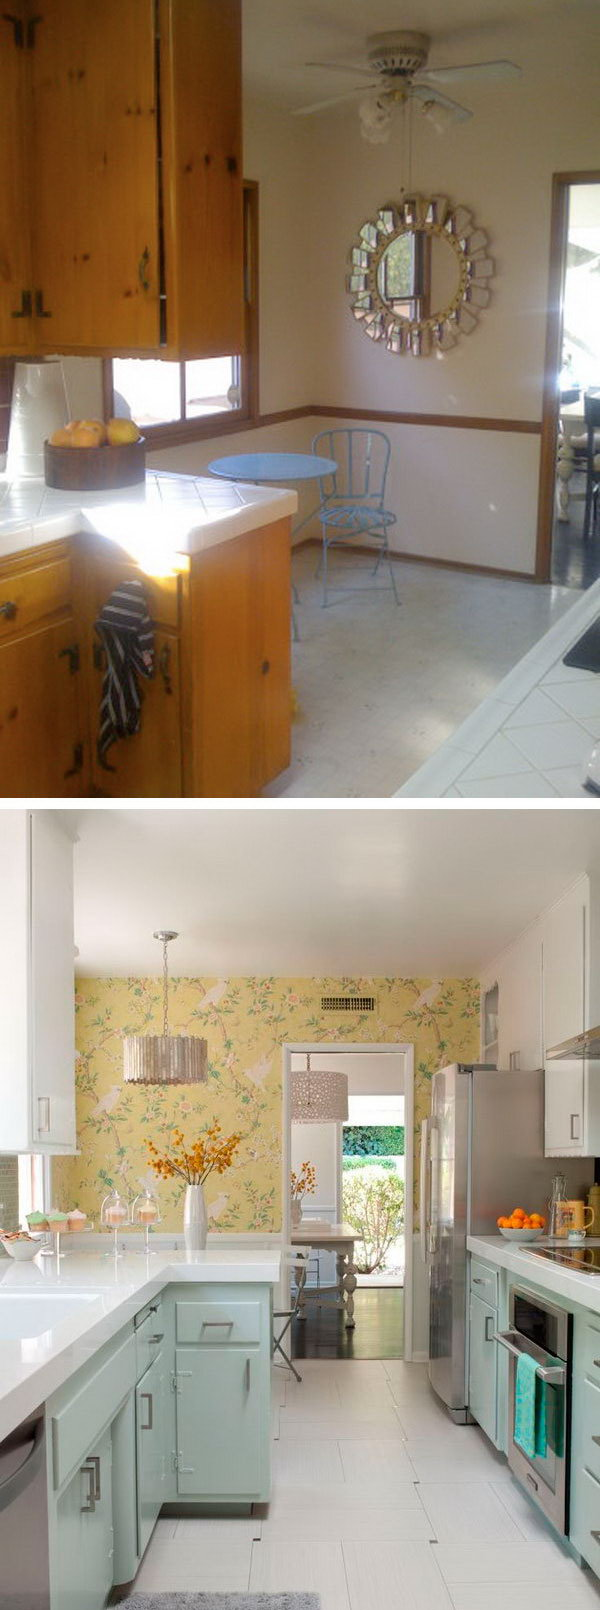 Before & After: A 1950s Kitchen Gets An Affordable Upgrade. Unbelievable renovation with a limited budget and time frame, a major overhaul can be done on a dated kitchen.